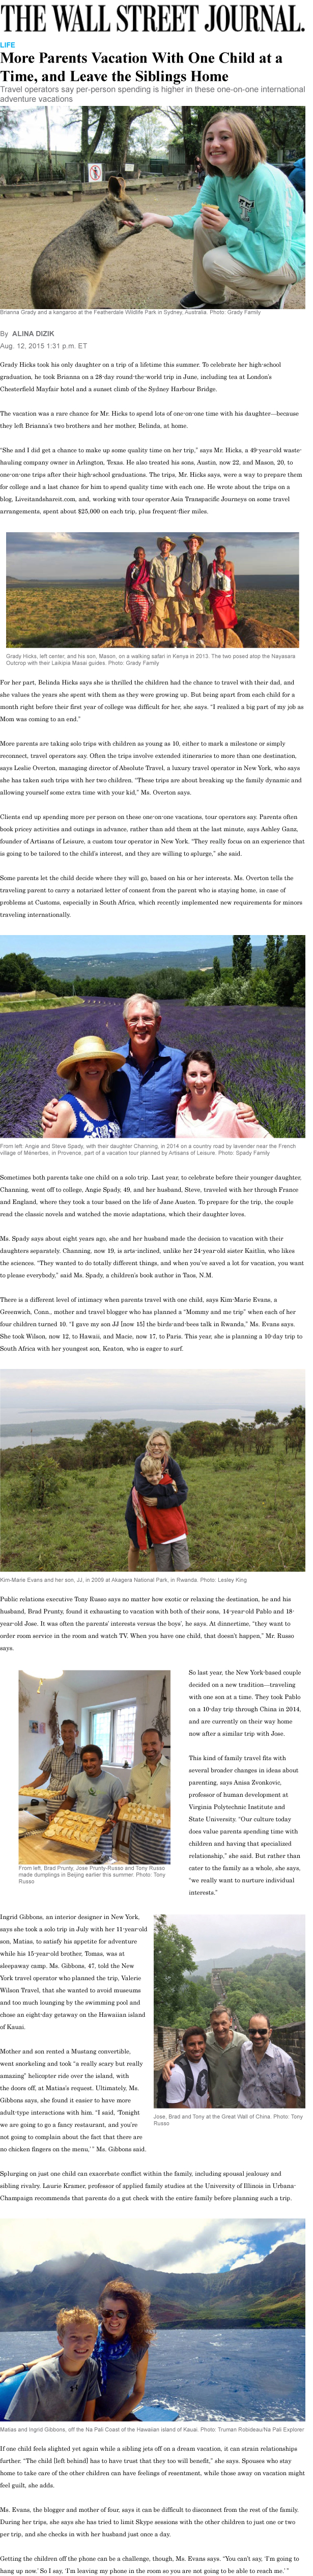 Wall Street Journal August 2015 Parents traveling with one child